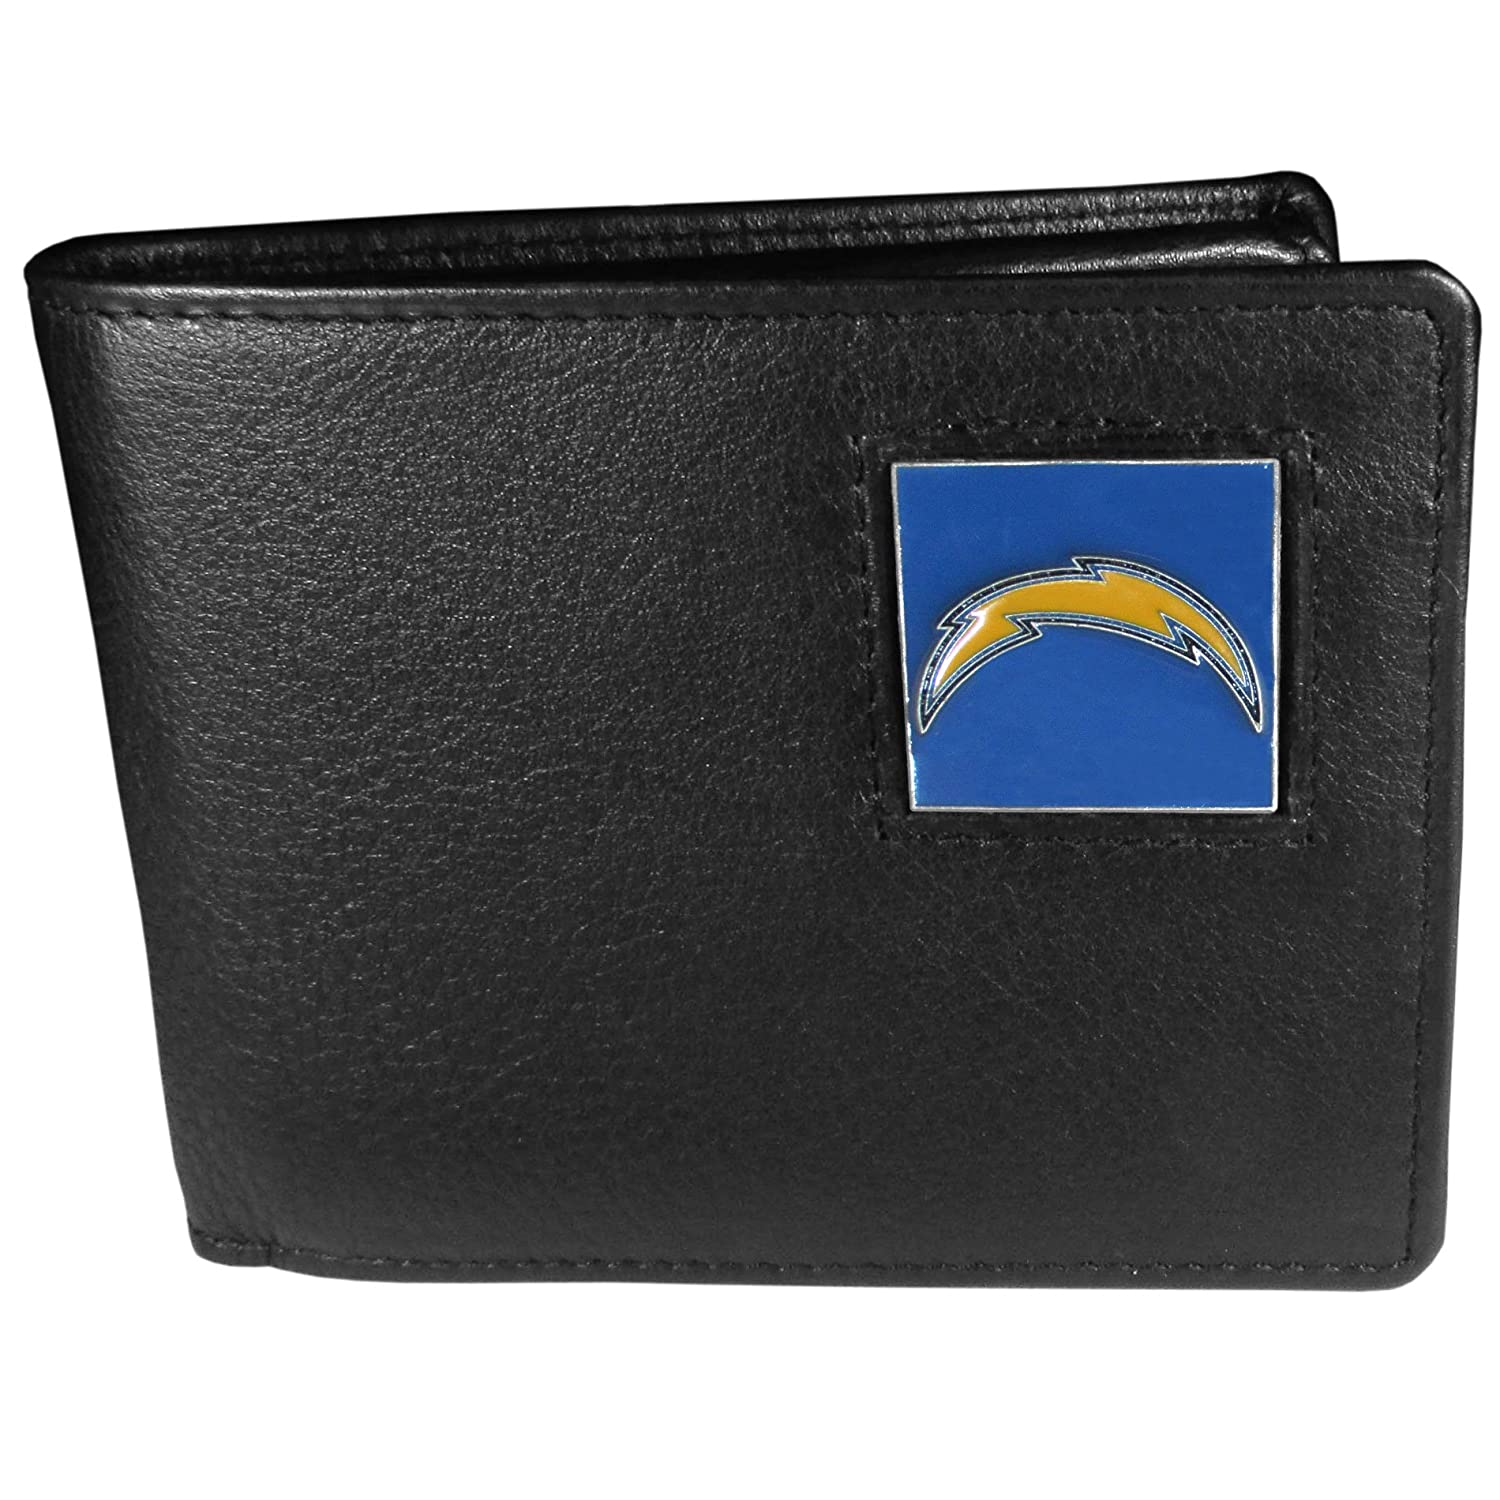 NFL San Diego Chargers Leather Bi-fold Wallet